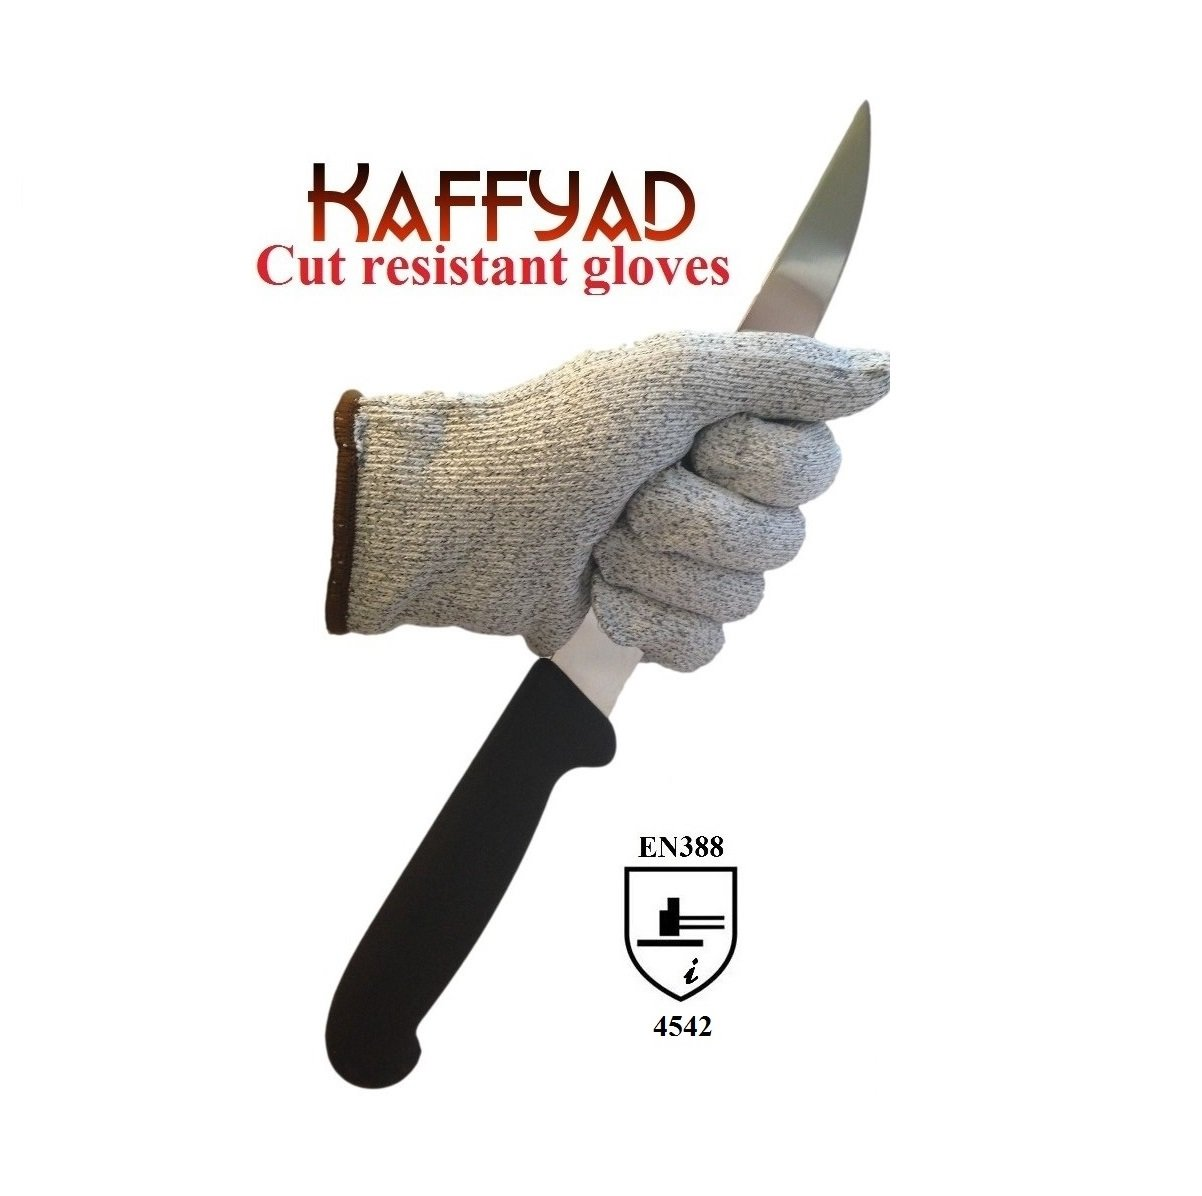 Kaffyad Level 5 Cut Resistant Kitchen Gloves, Small - 2 Gloves (1 Pair)